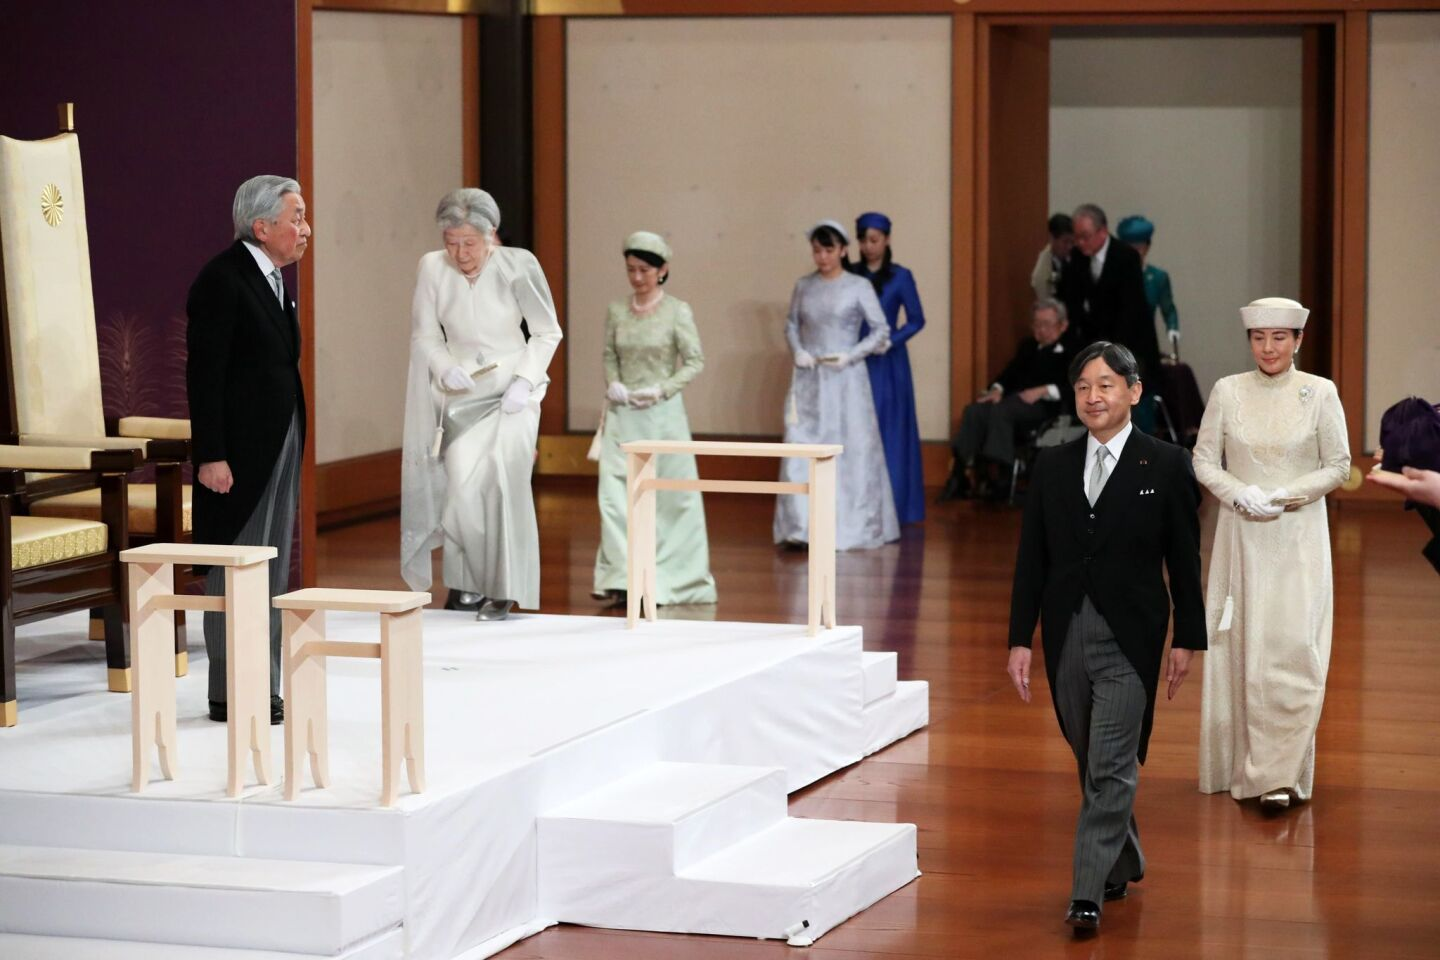 Japanese Emperor Akihito steps down